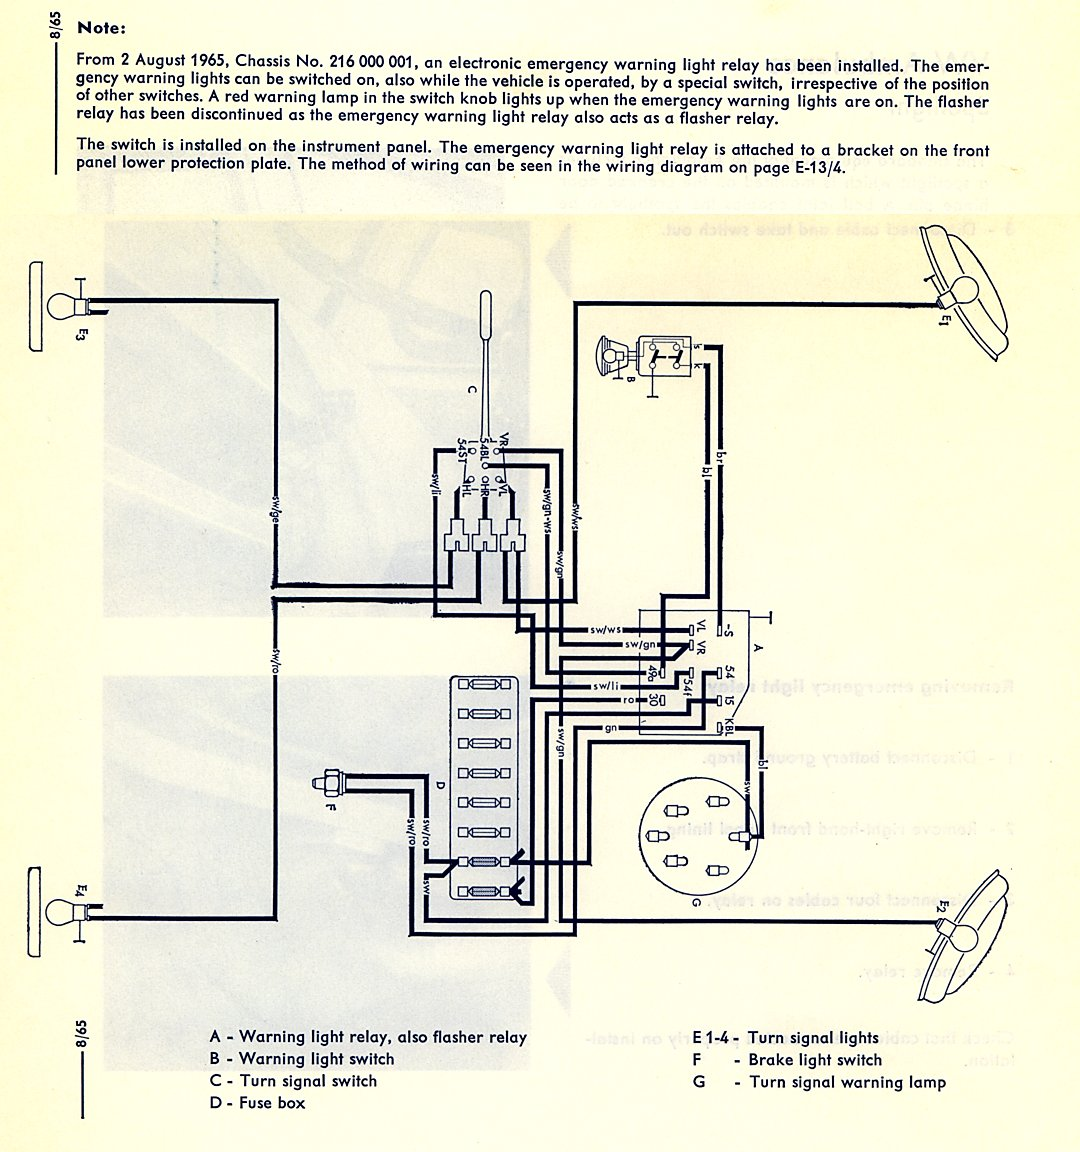 1964 chevy impala turn signal switch wiring diagram